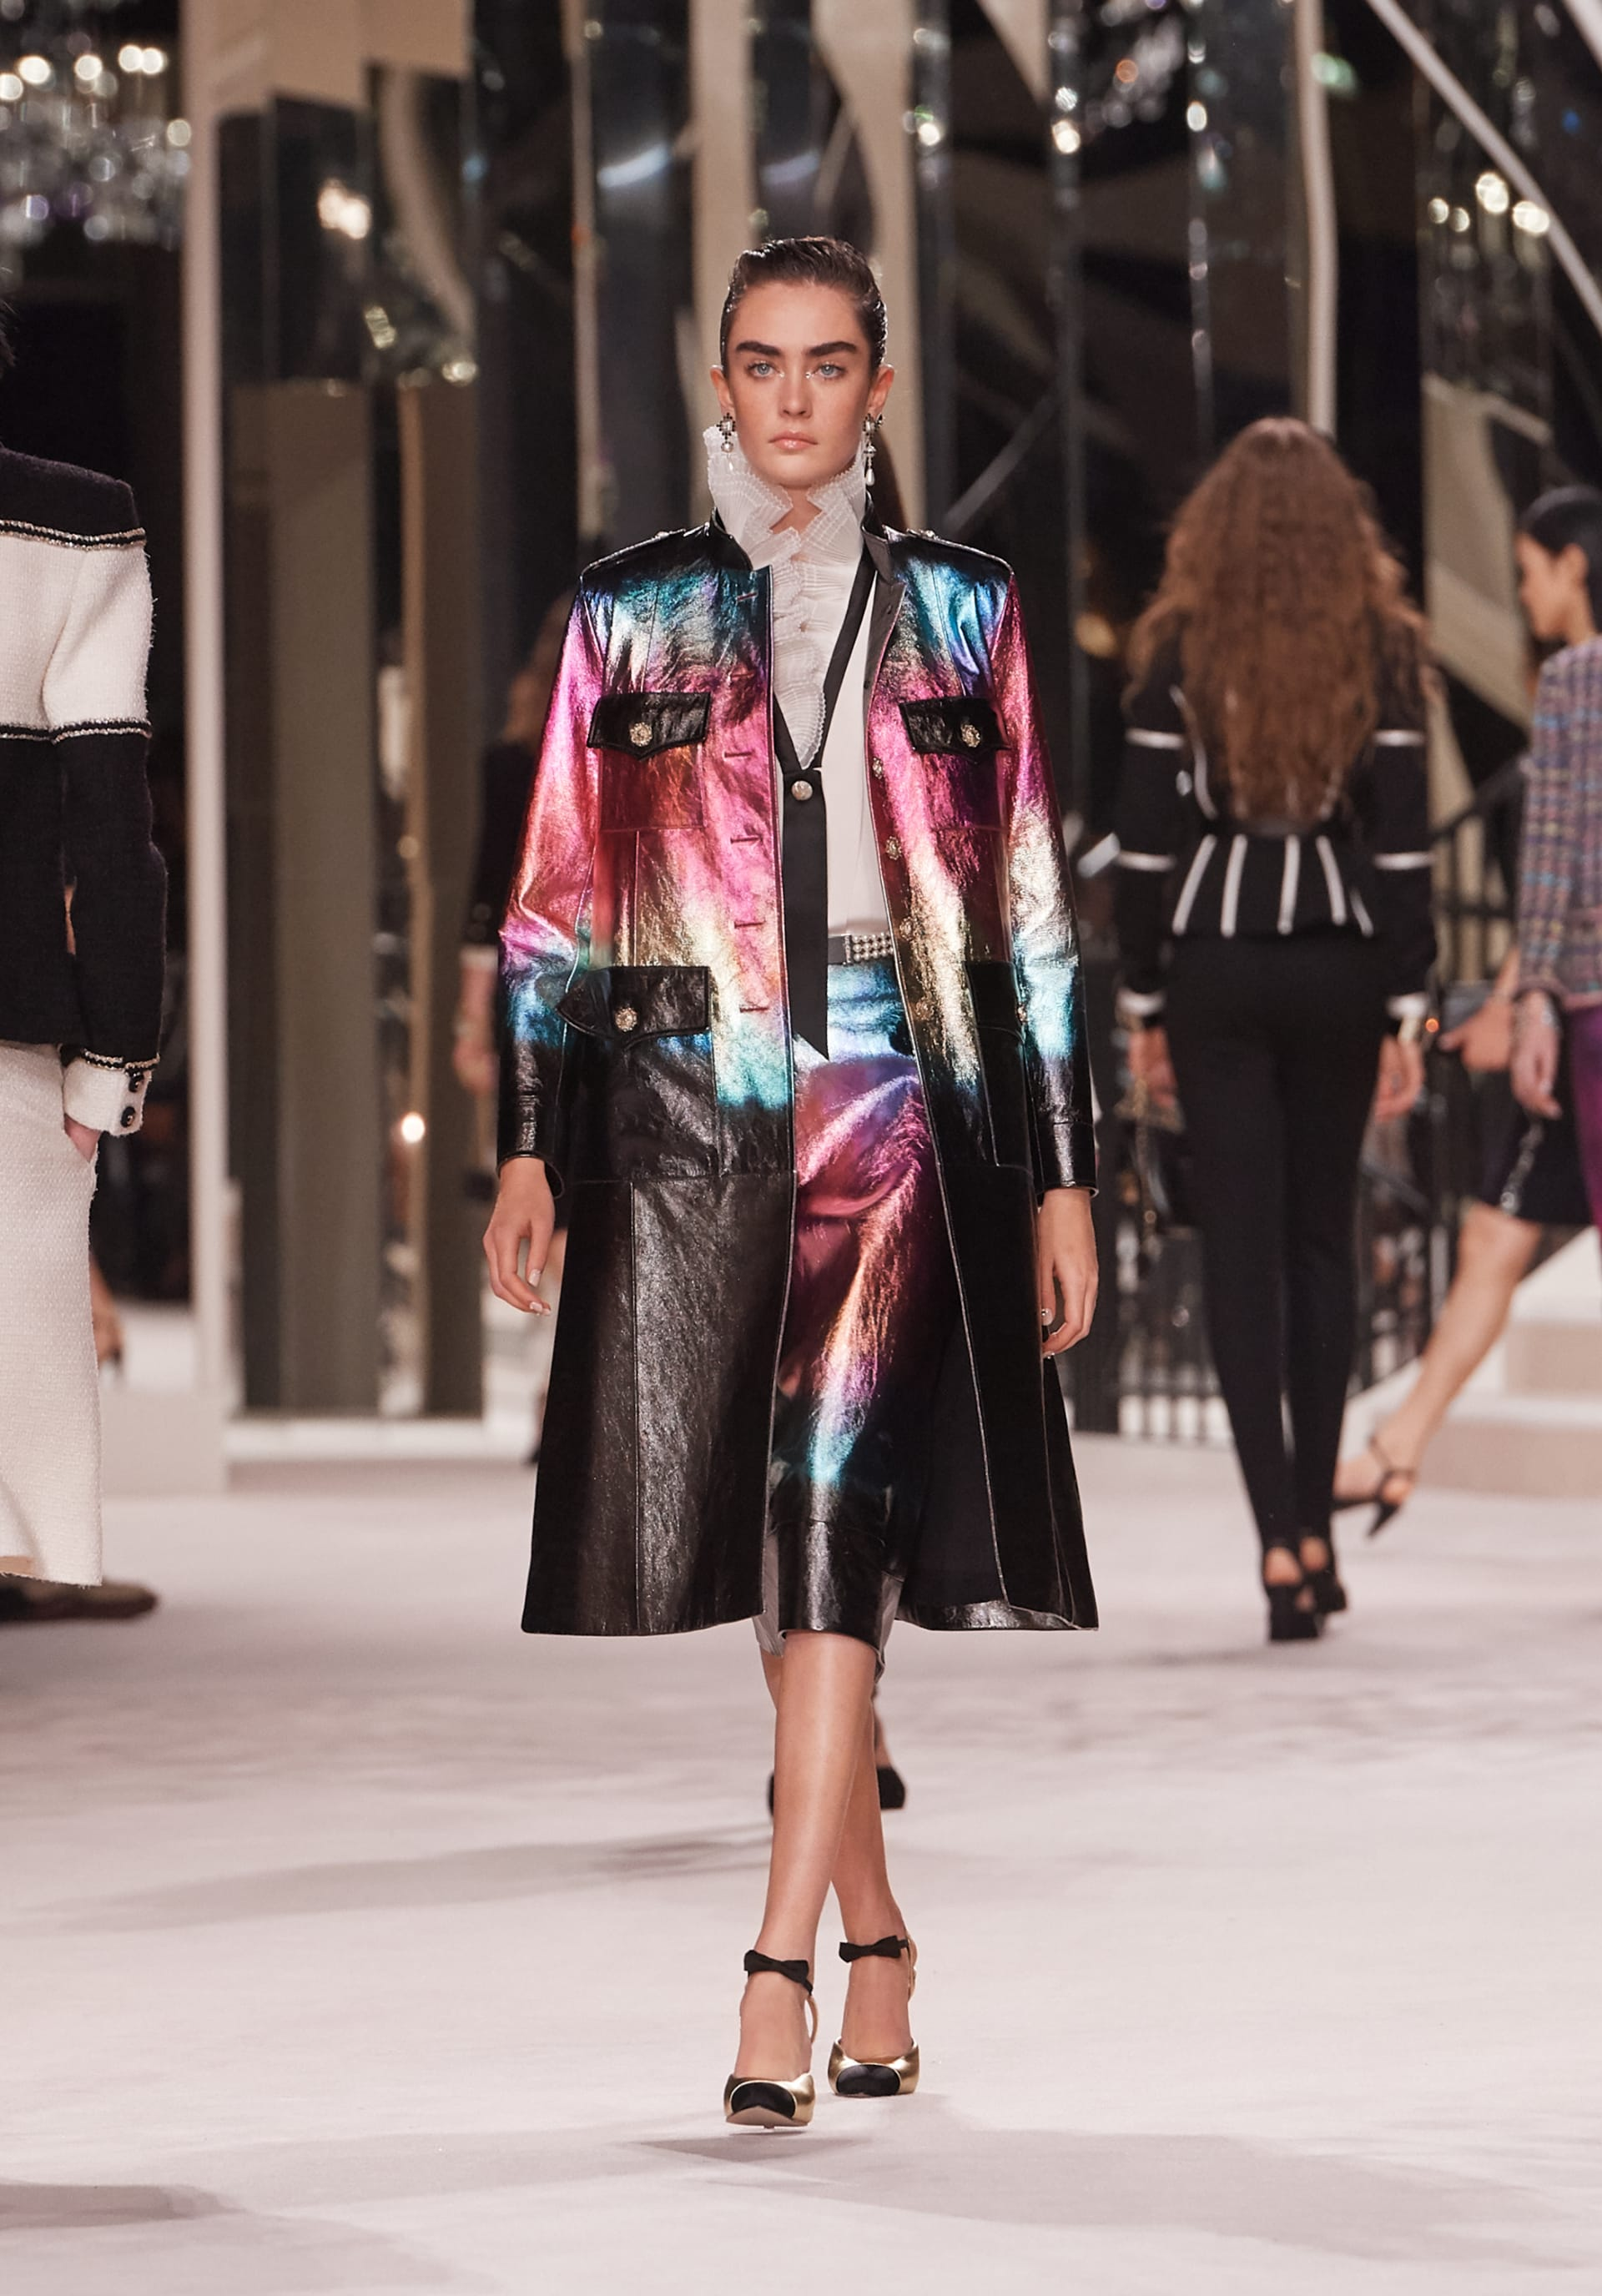 View 1 - Look 20 - Métiers d'Art 2019/20 - see full sized version